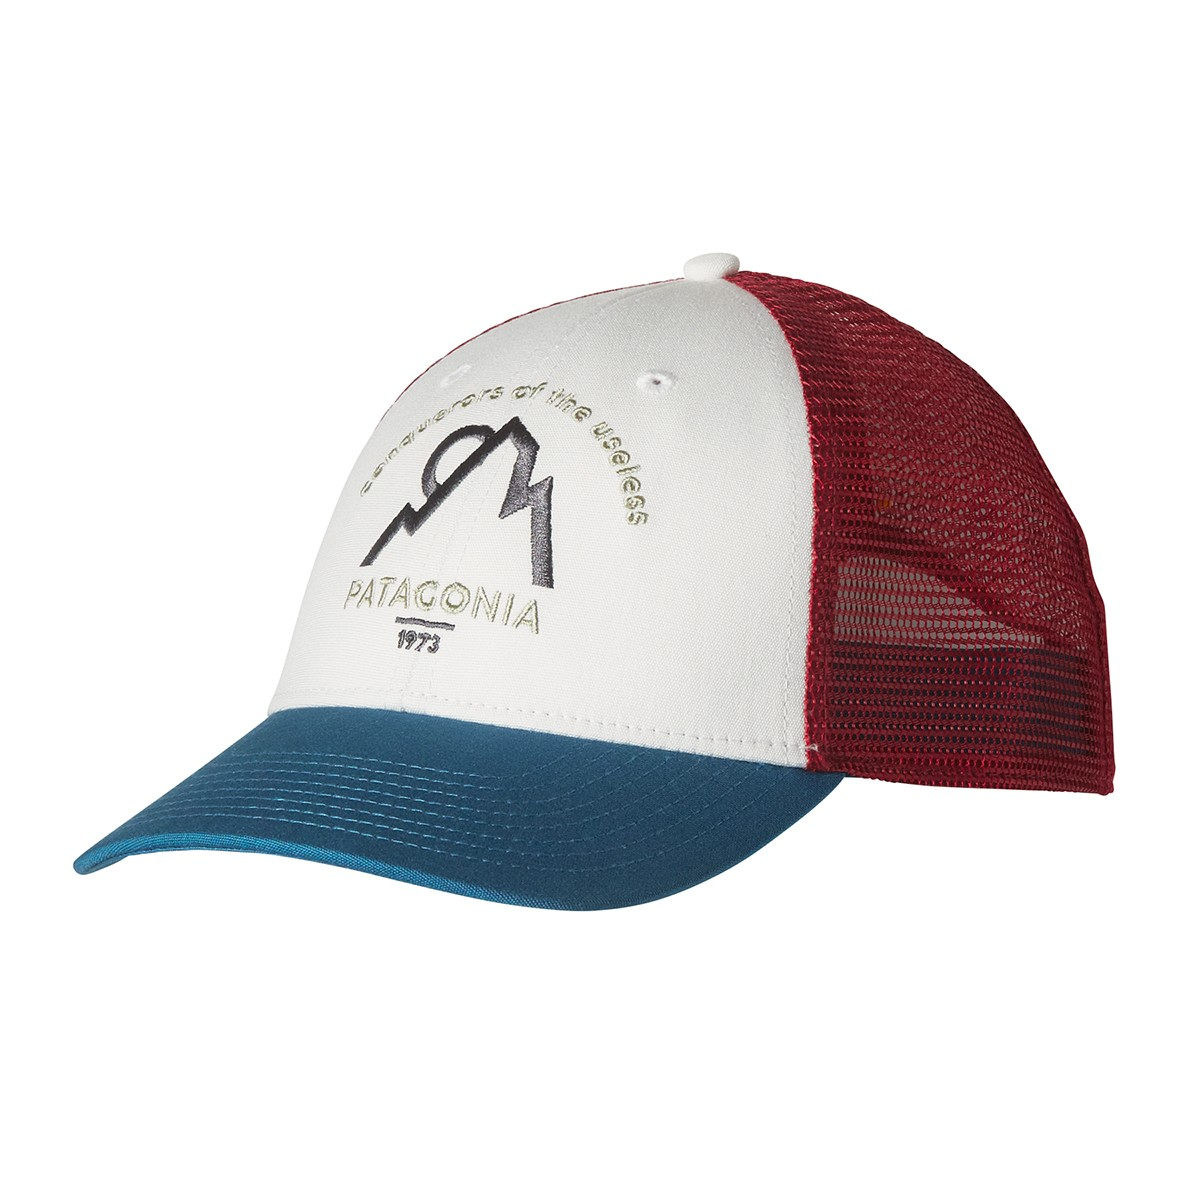 Patagonia Moonset Lopro Trucker Hat  b8a77495f32